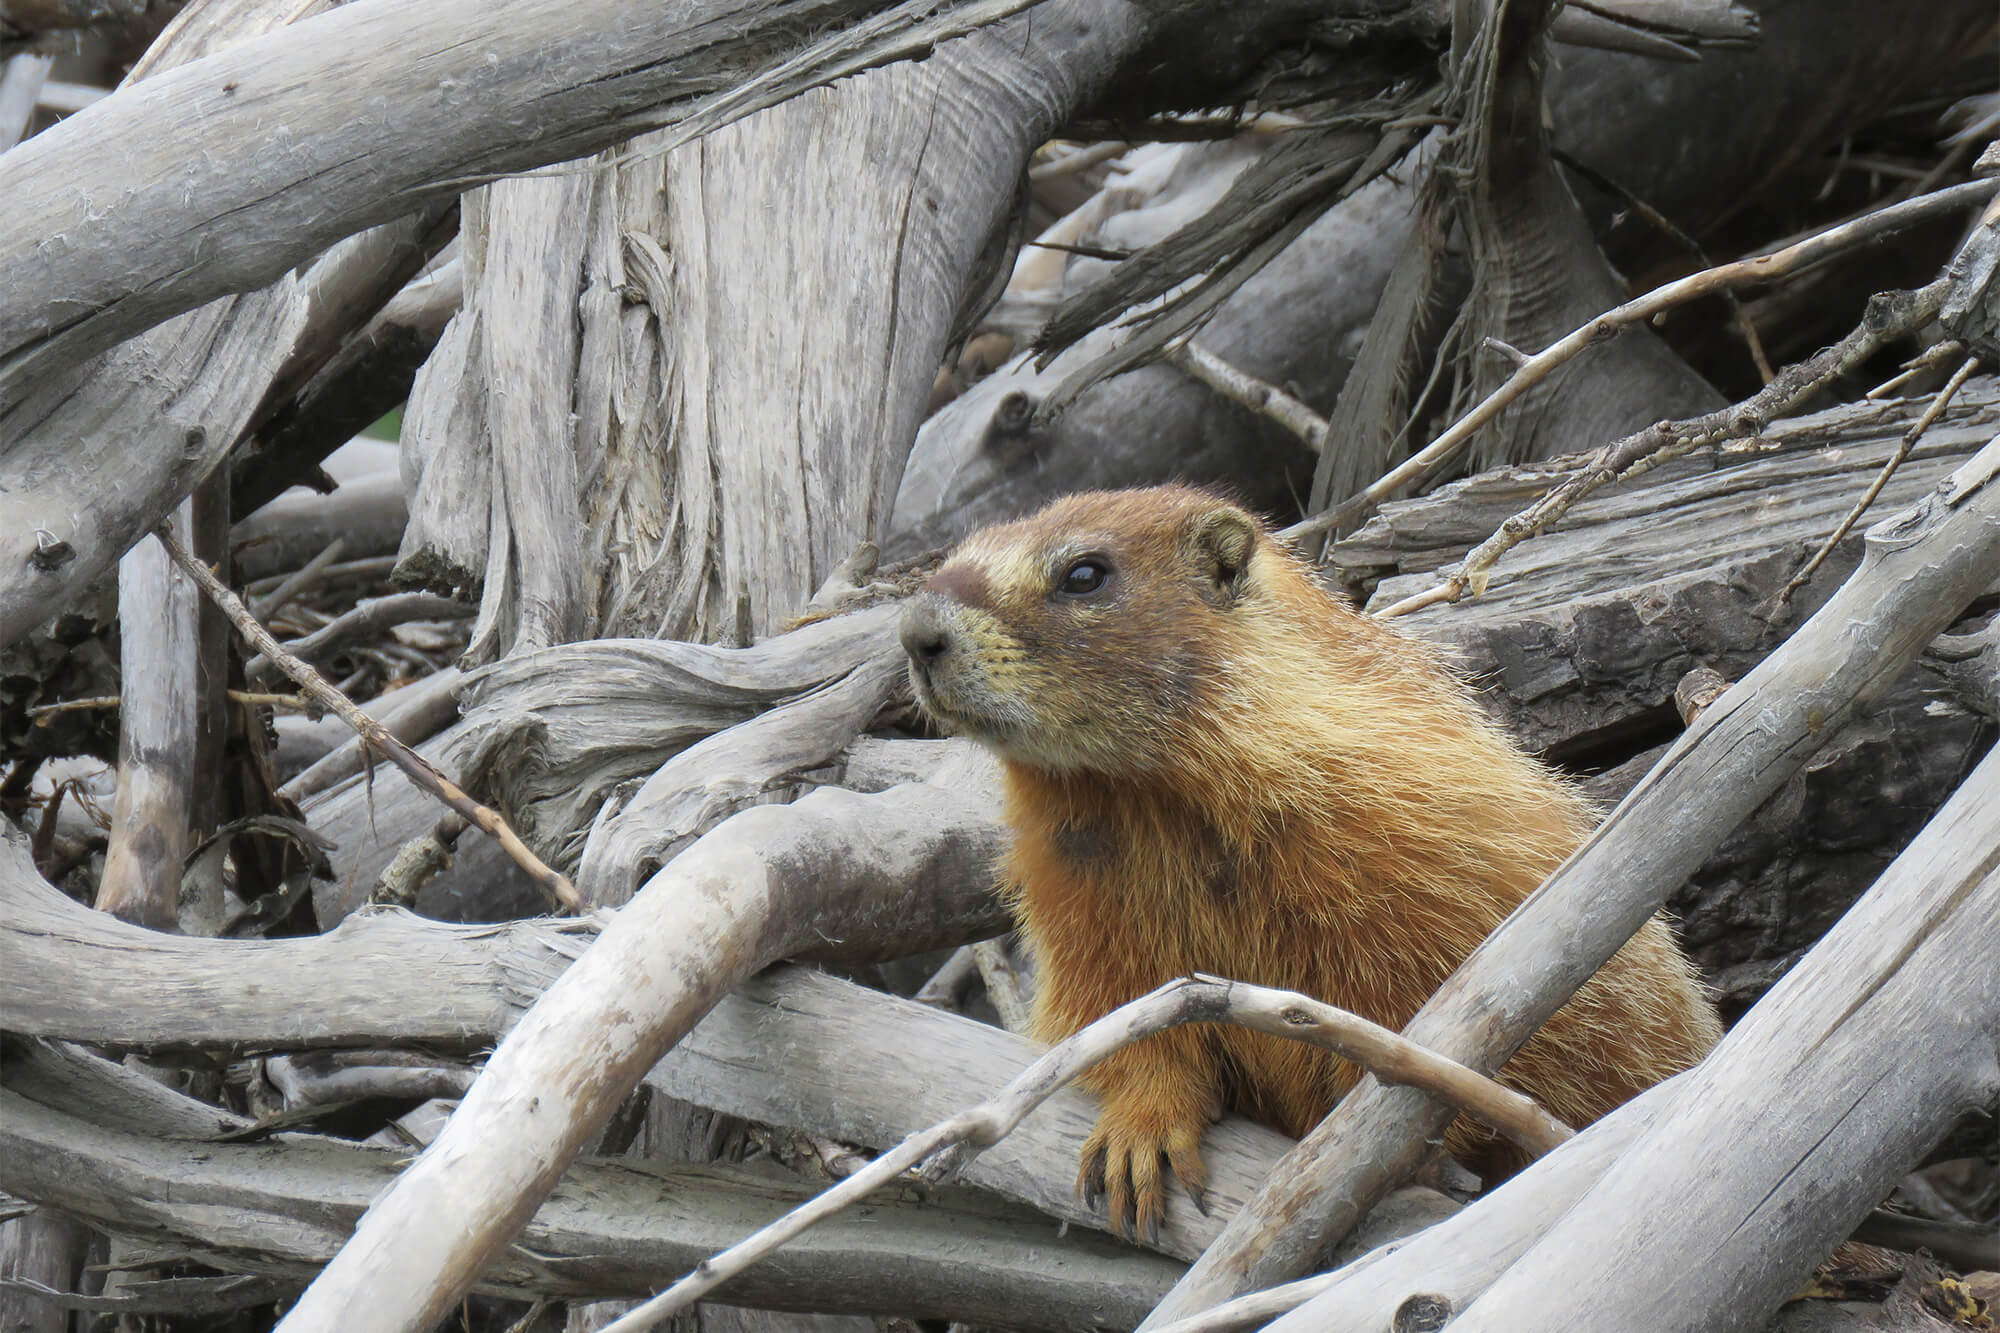 Color photo of a marmot on a pile of driftwood.